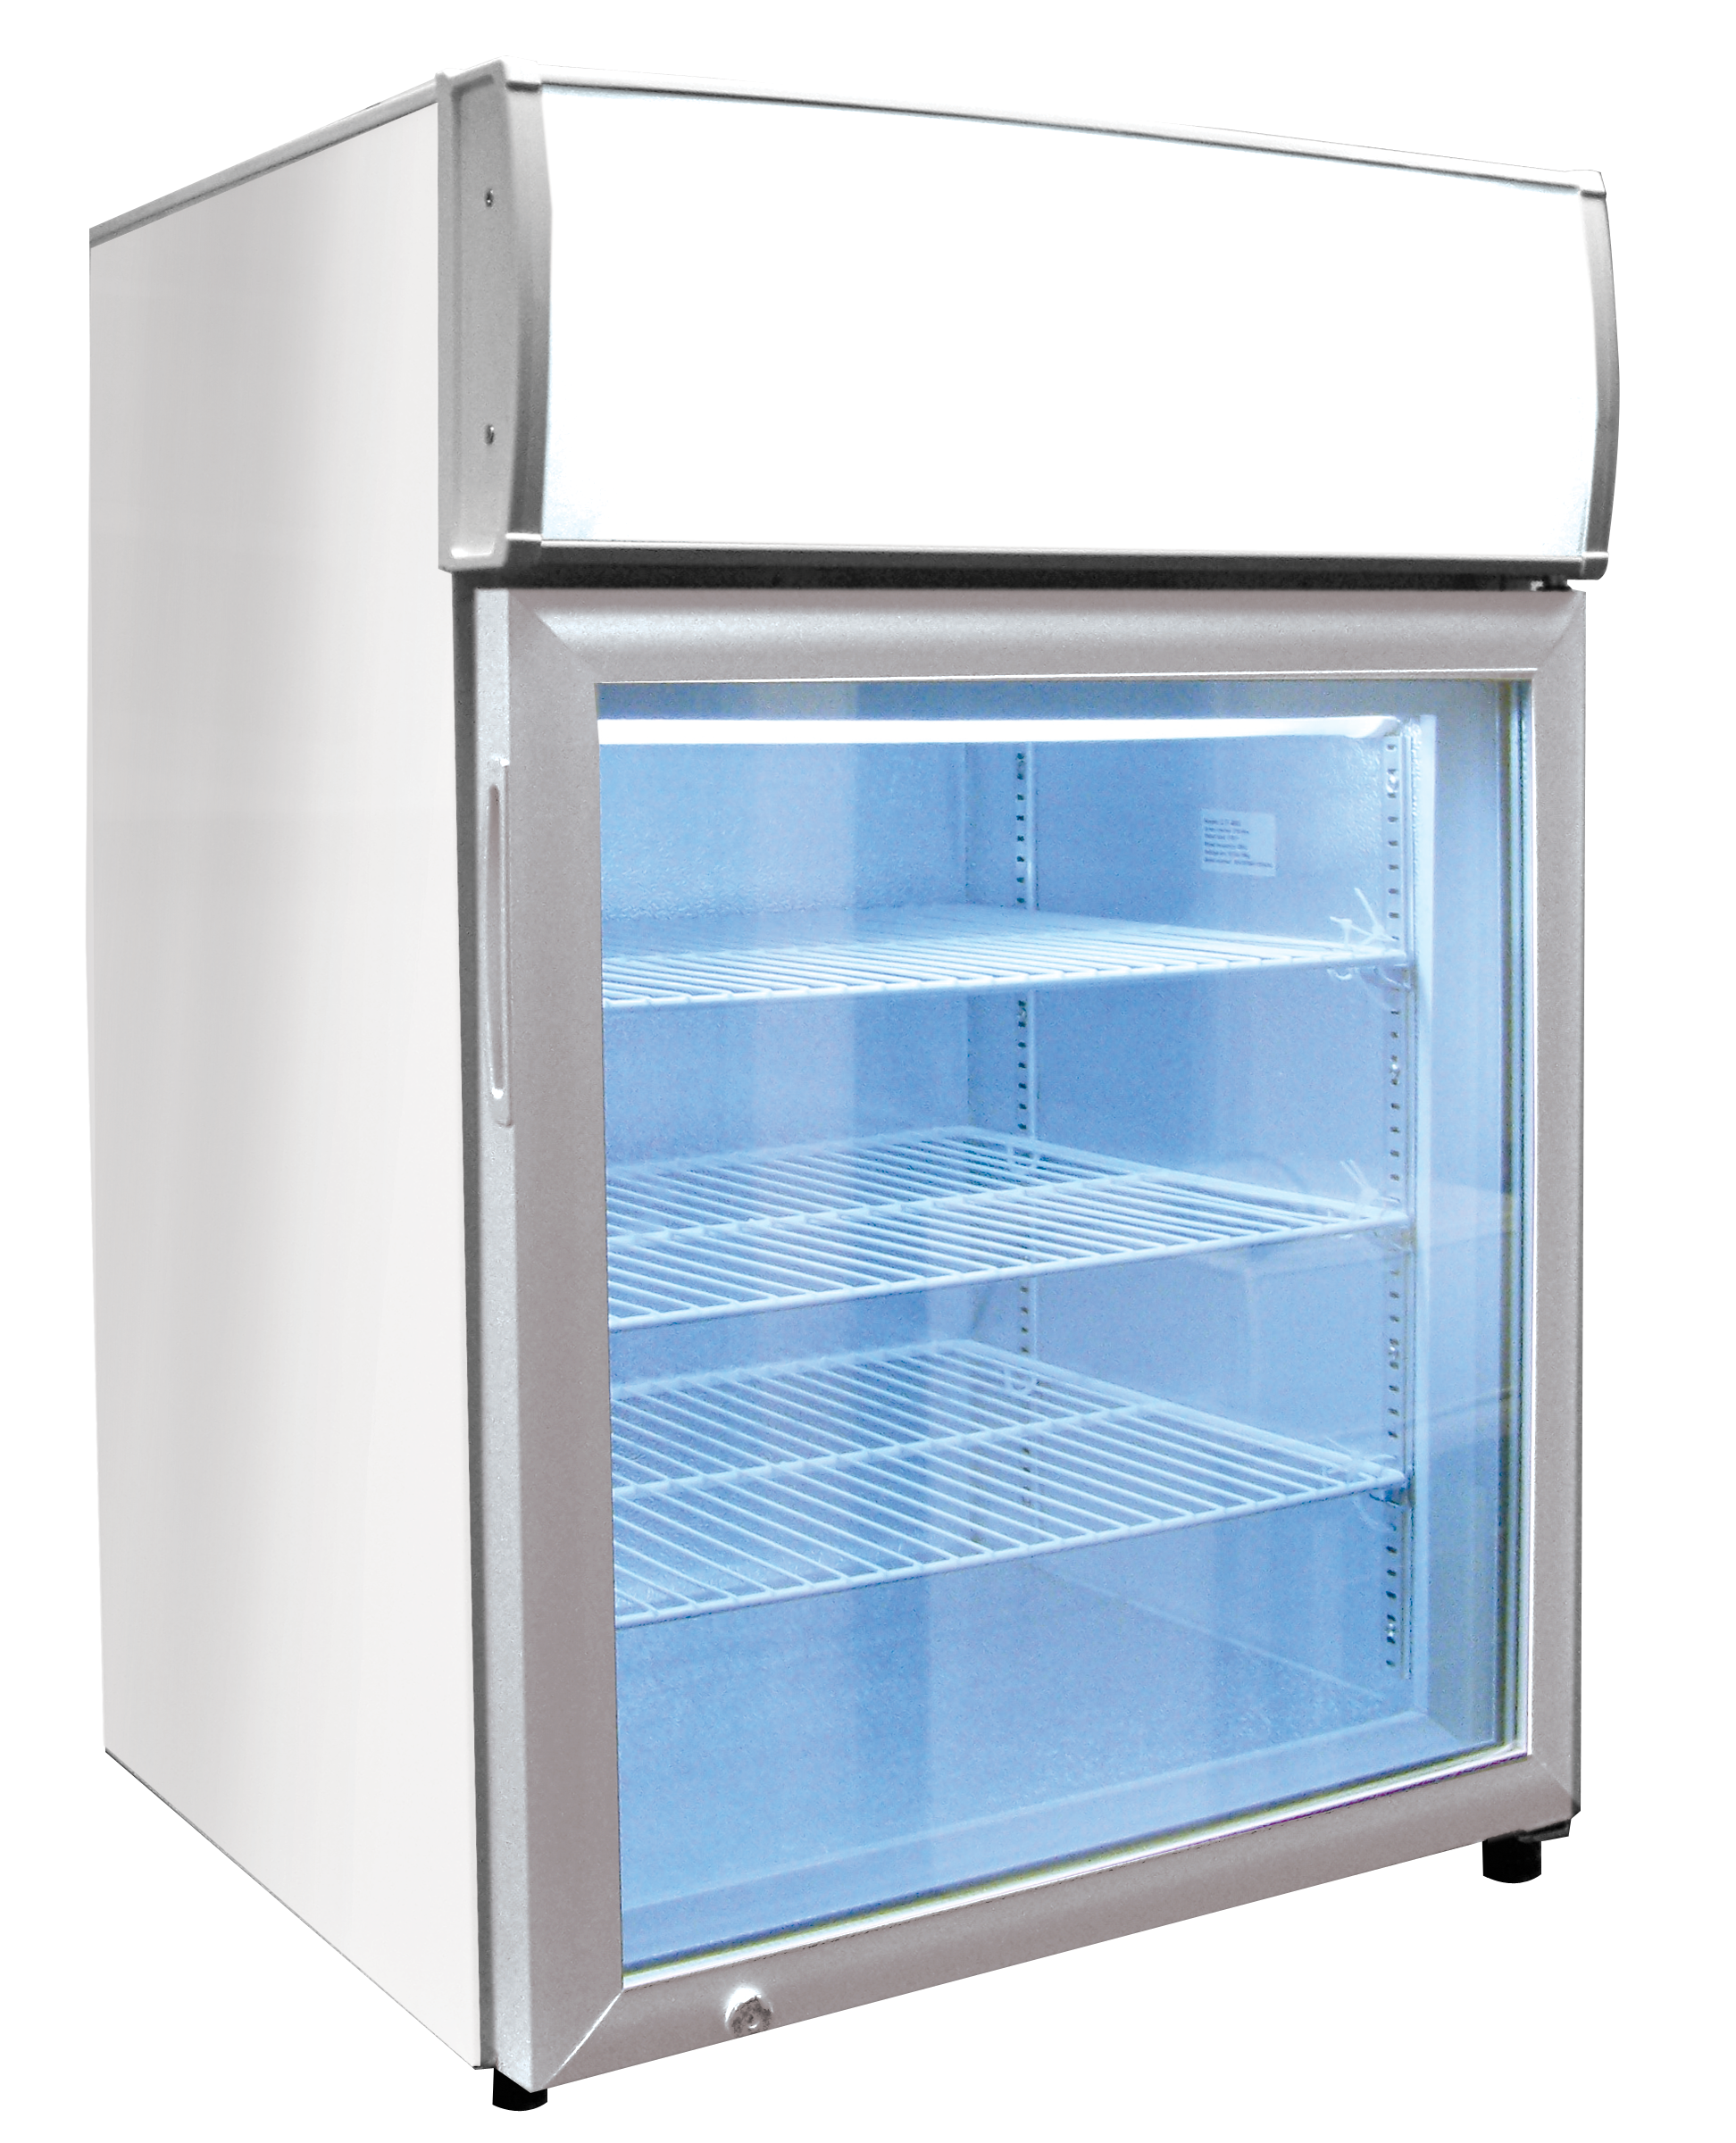 Ctf Ms Countertop Display Freezer With Light Ctf 4ms Shown Comes